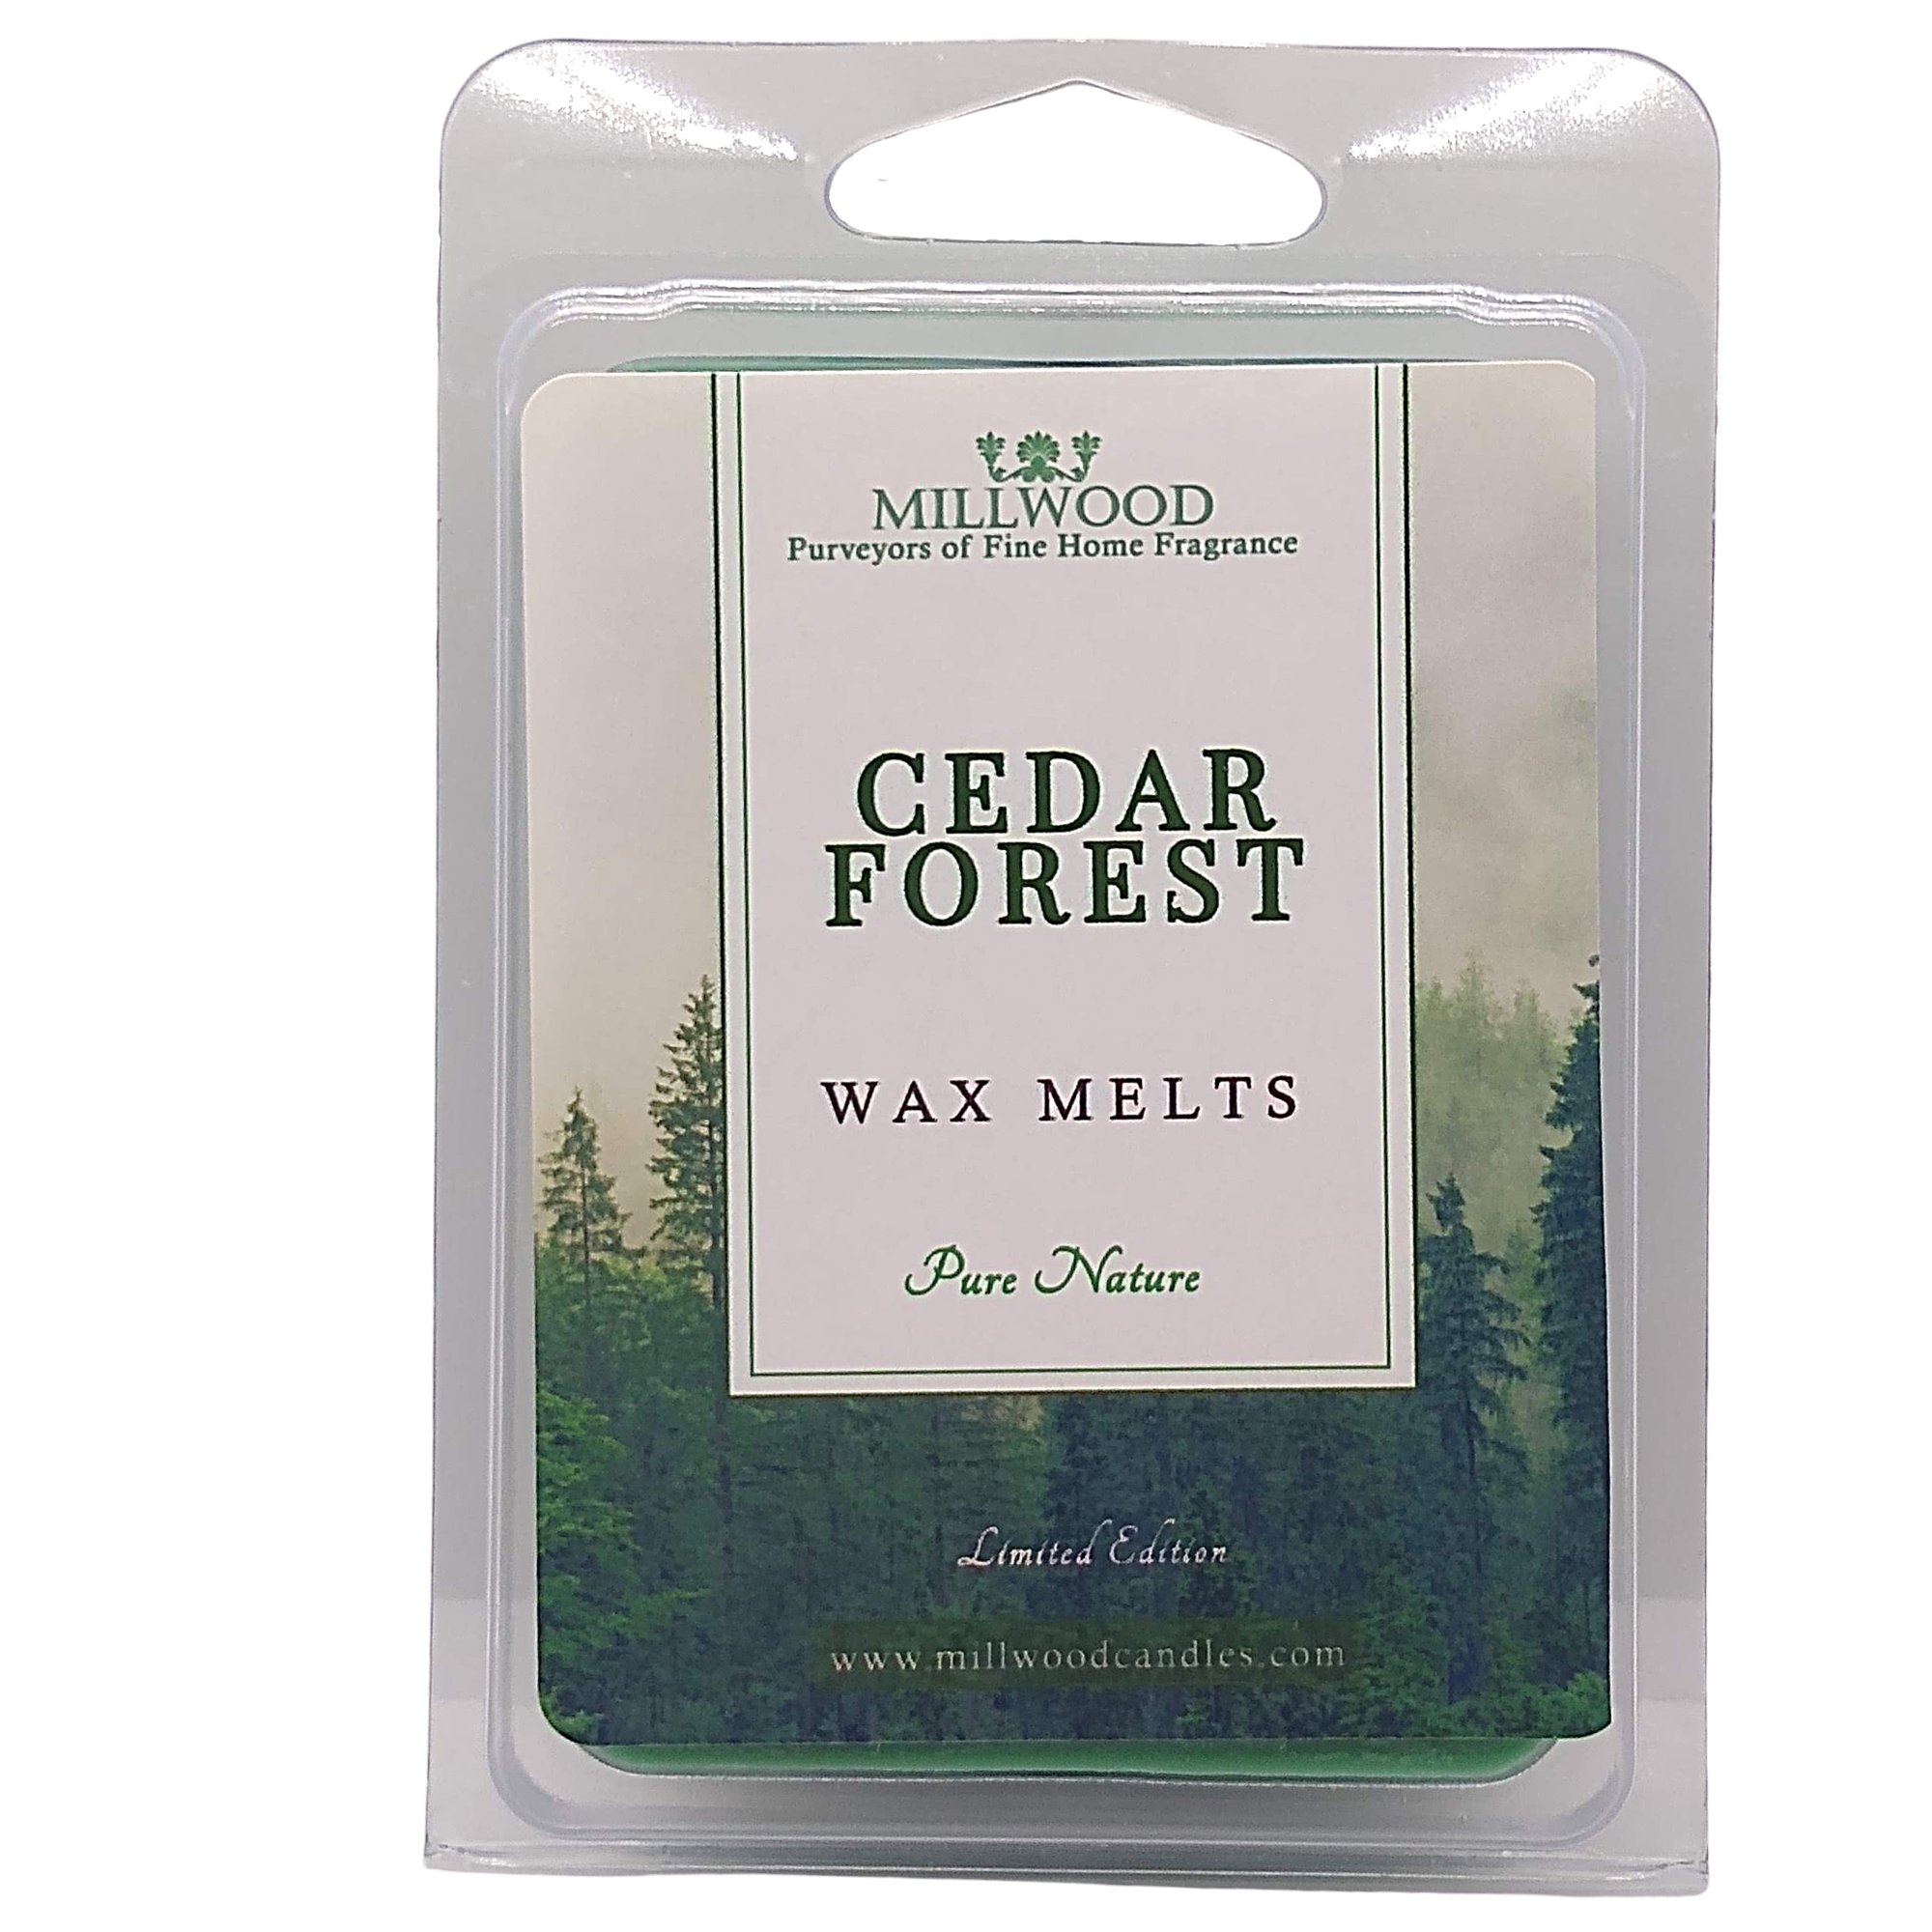 Cedar Wax Melts. Scent of Christmas by Millwood Candles